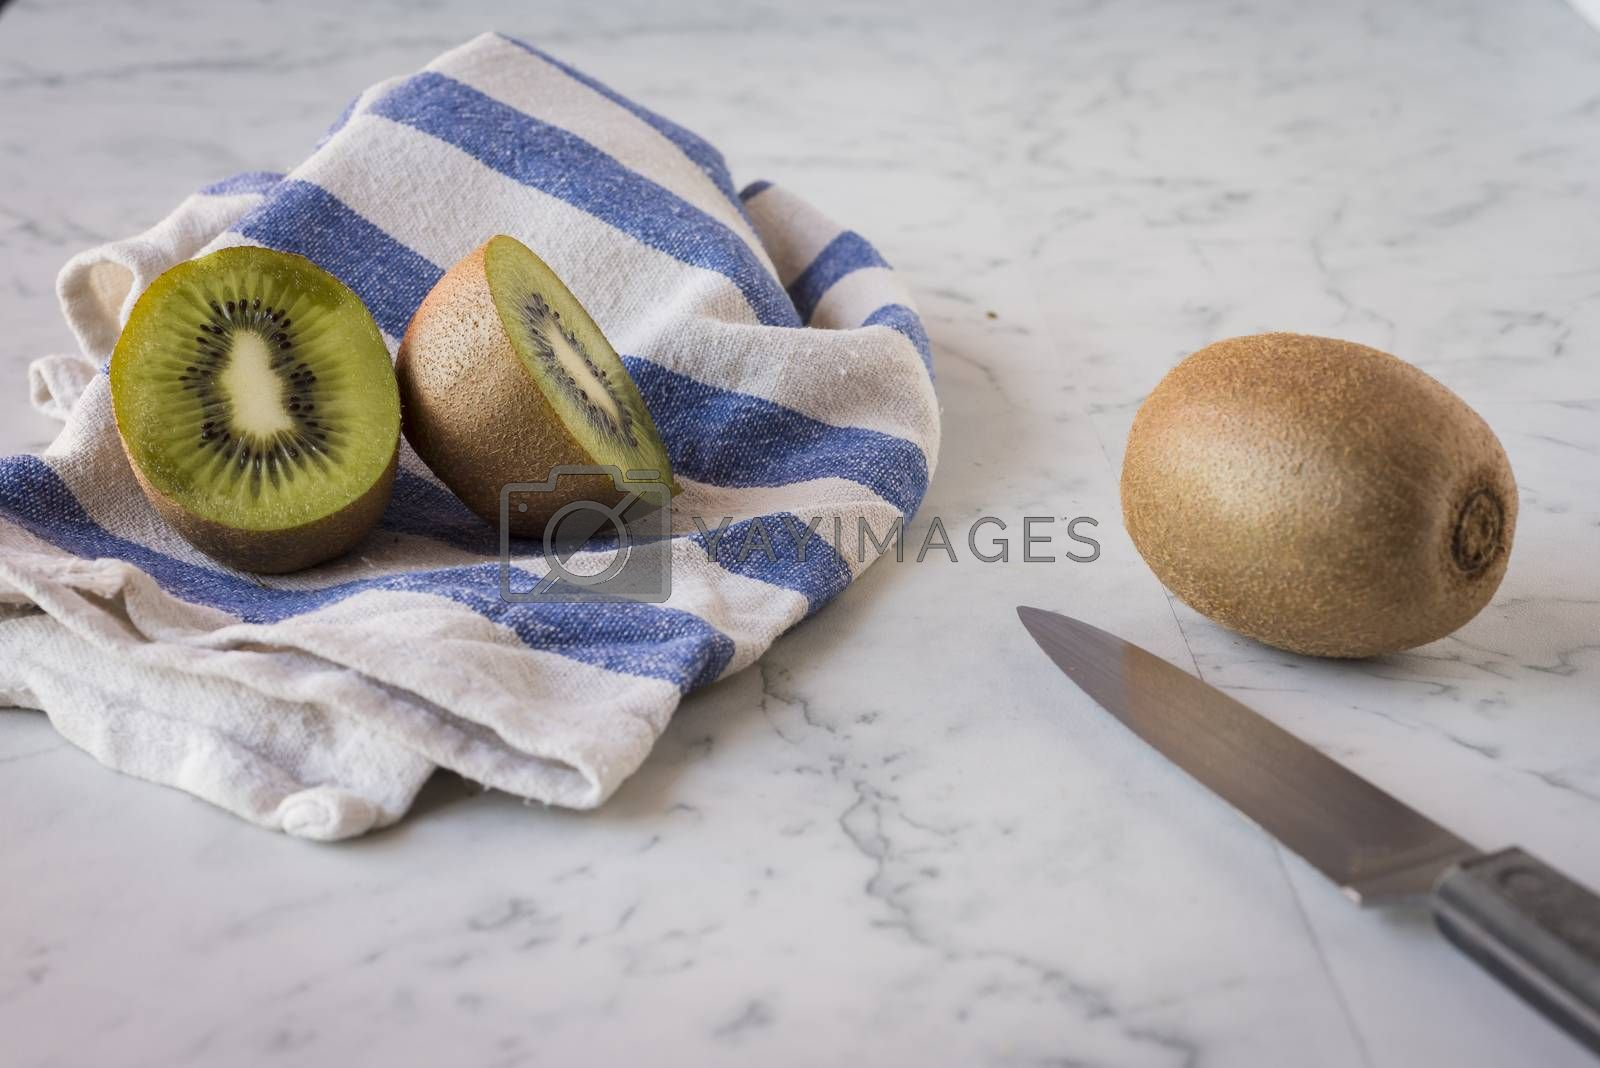 Two green and fresh kiwis on marble surface